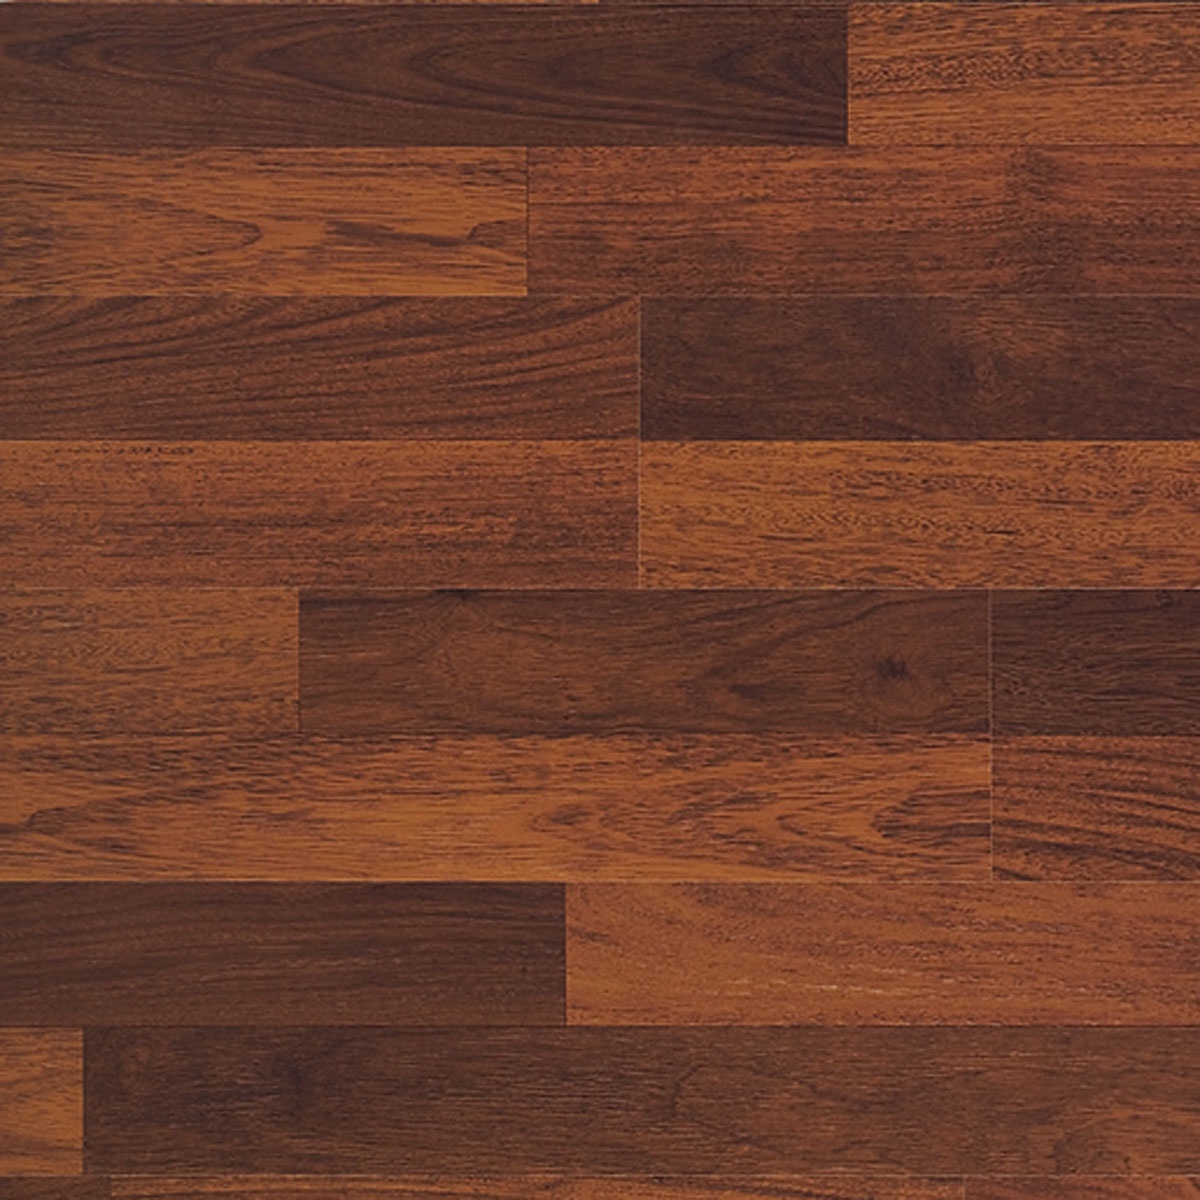 QuickStep 700 Home Brazilian Cherry Laminate Flooring